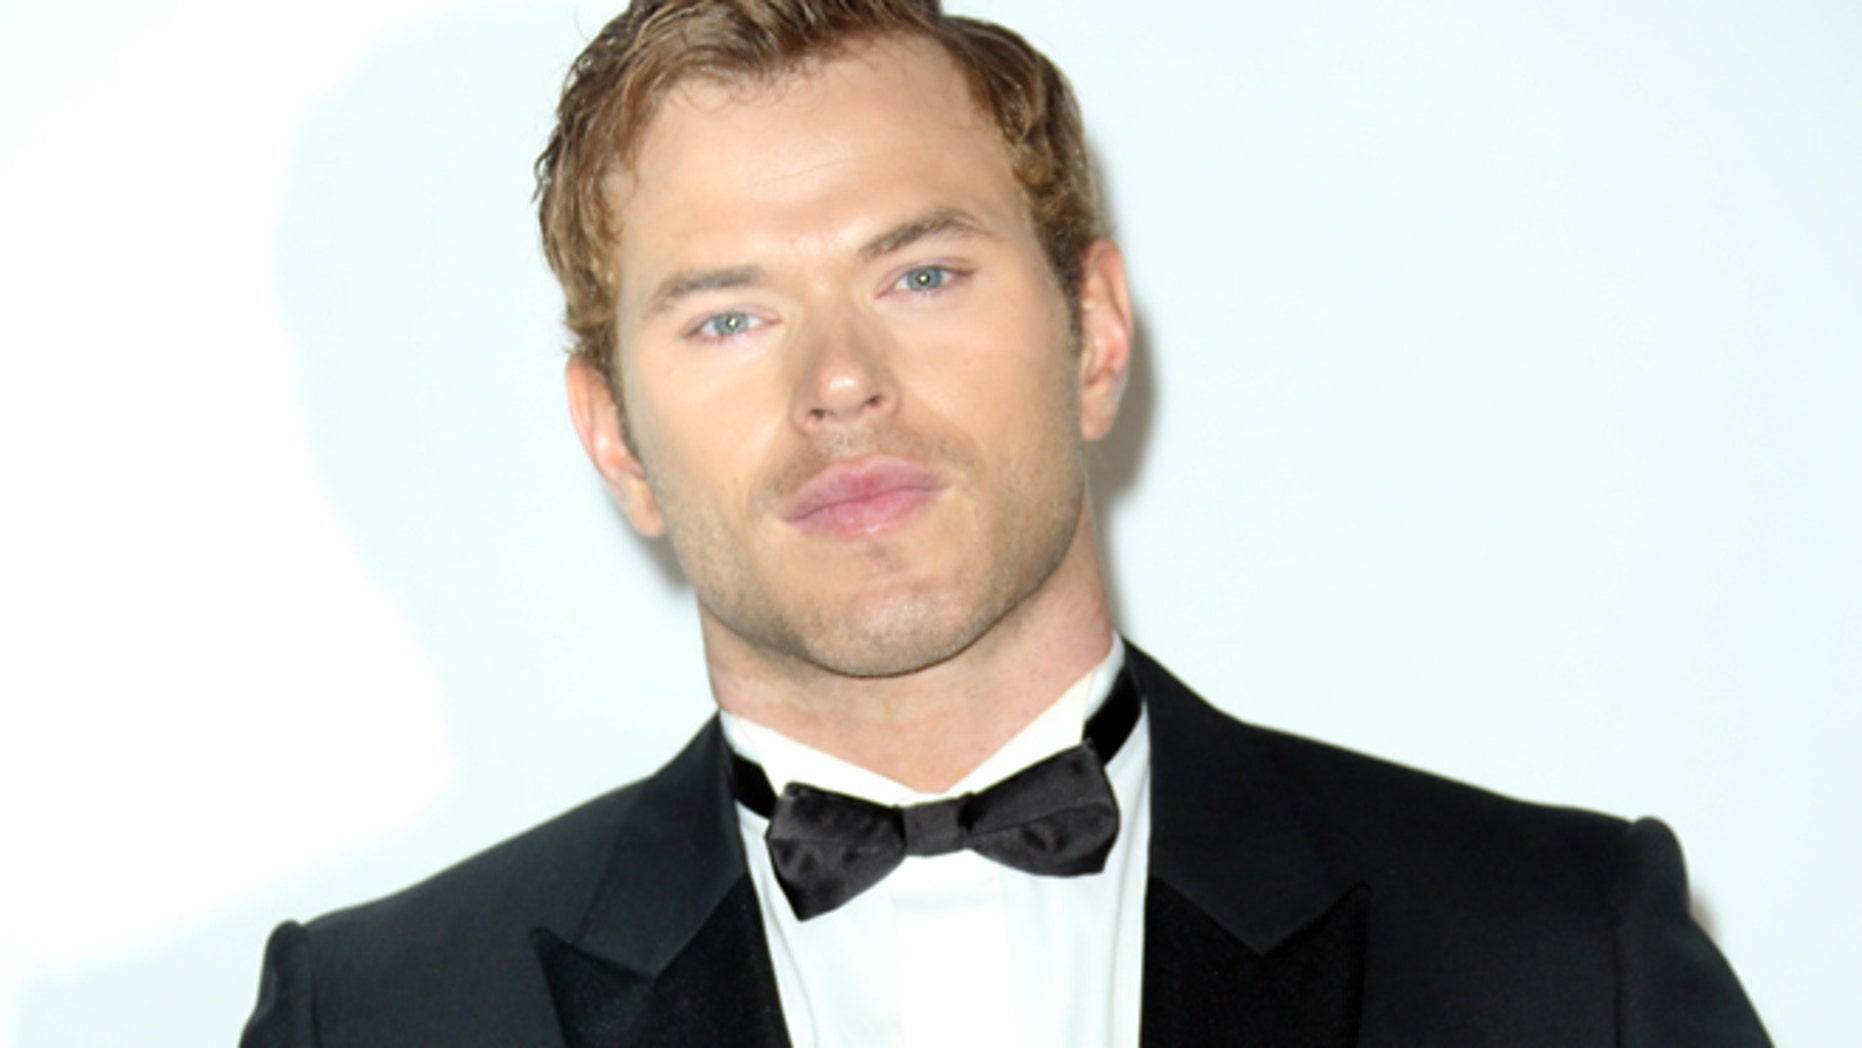 FILE - In this Thursday, May 22, 2014 file photo, actor Kellan Lutz arrives at the amfAR Cinema Against AIDS benefit at the Hotel du Cap-Eden-Roc, during the 67th international film festival, in Cap d'Antibes, southern France. Lutz and Robert Pattinson were in Cannes this week to promote projects: Pattinson had one film in competition at the film festival and one out of it, while Lutz was around town for his role in The Expendables 3. (Photo by Joel Ryan/Invision/AP-File)